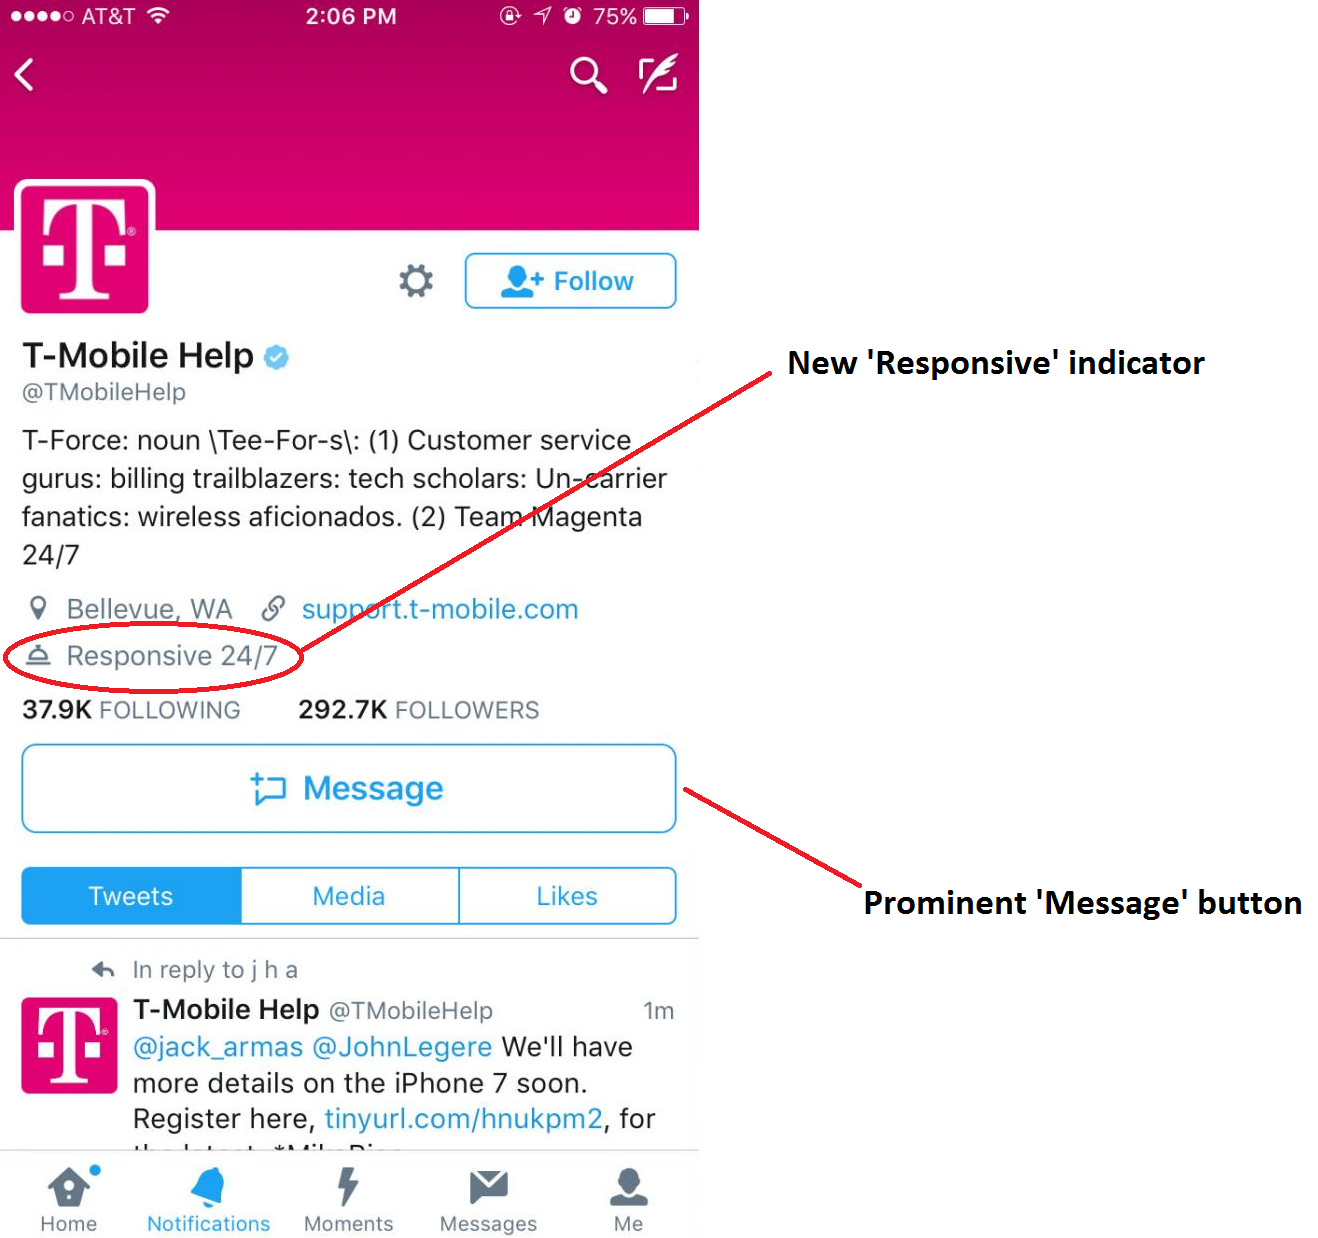 Twitter Adds Location-Sharing Tools to Customer Service via DM Options | Social Media Today